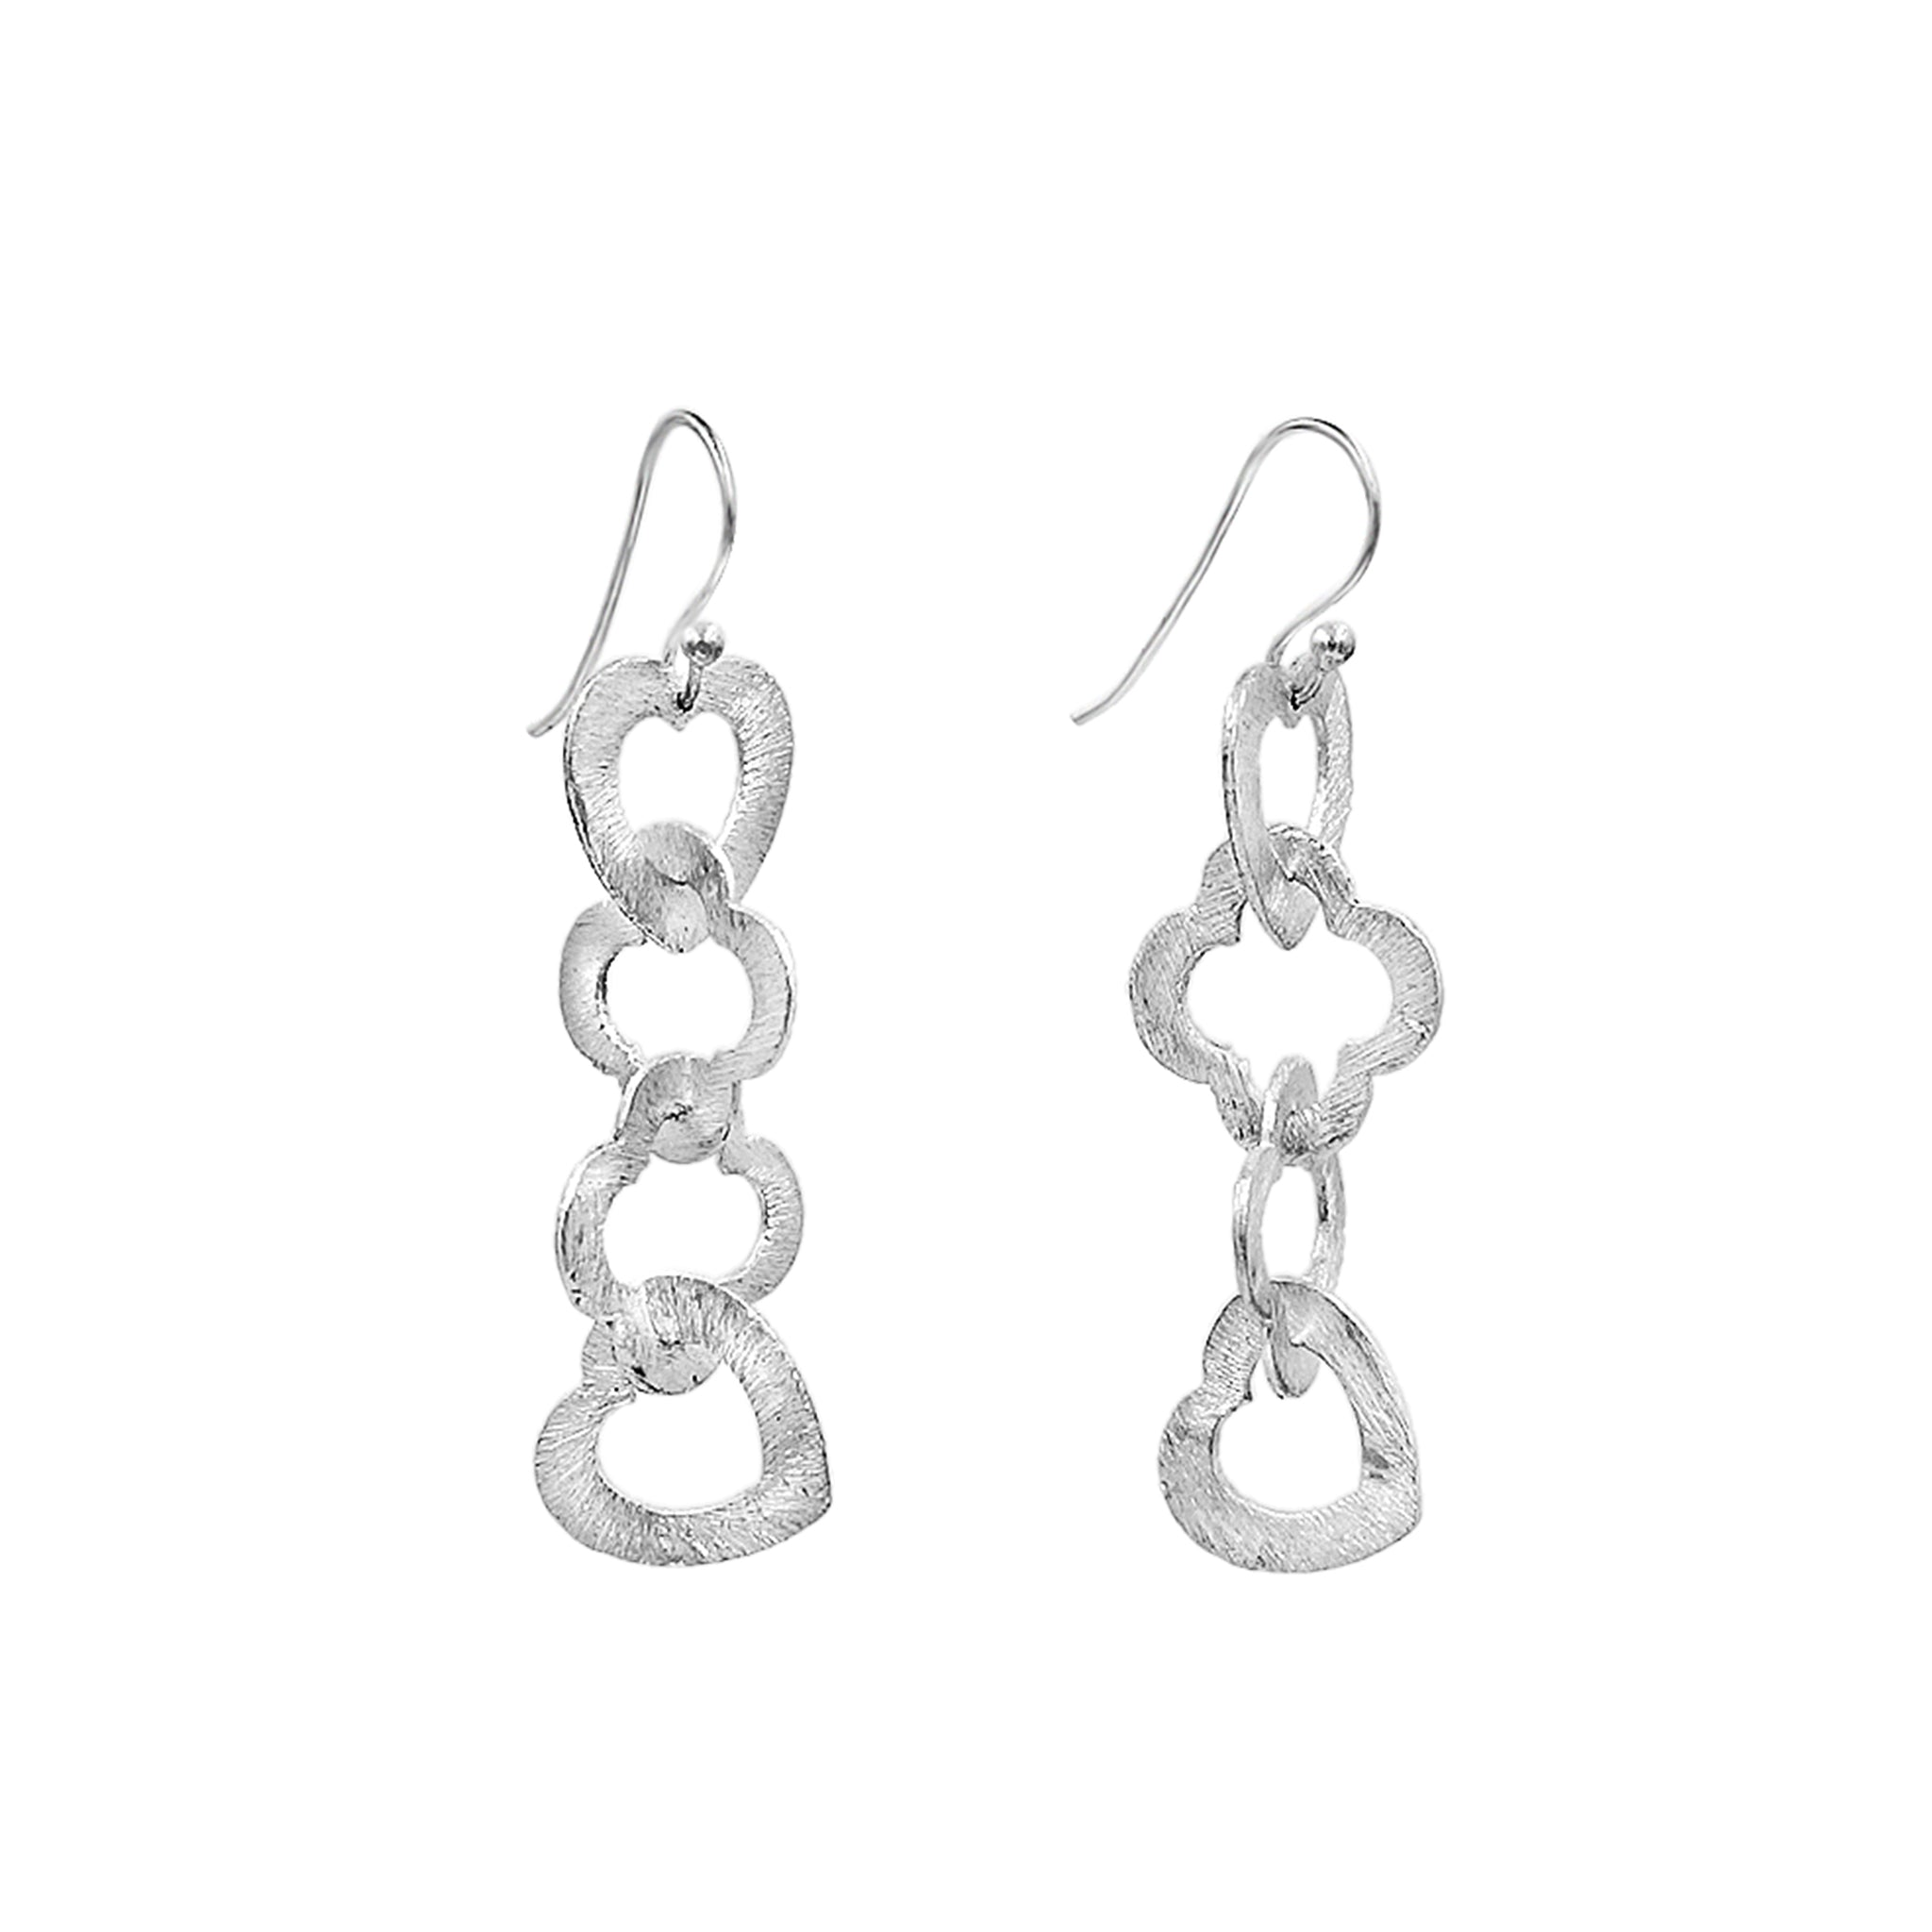 Open heart silver earrings - Sati Gems Hawaii Healing Crystal Gemstone Jewelry